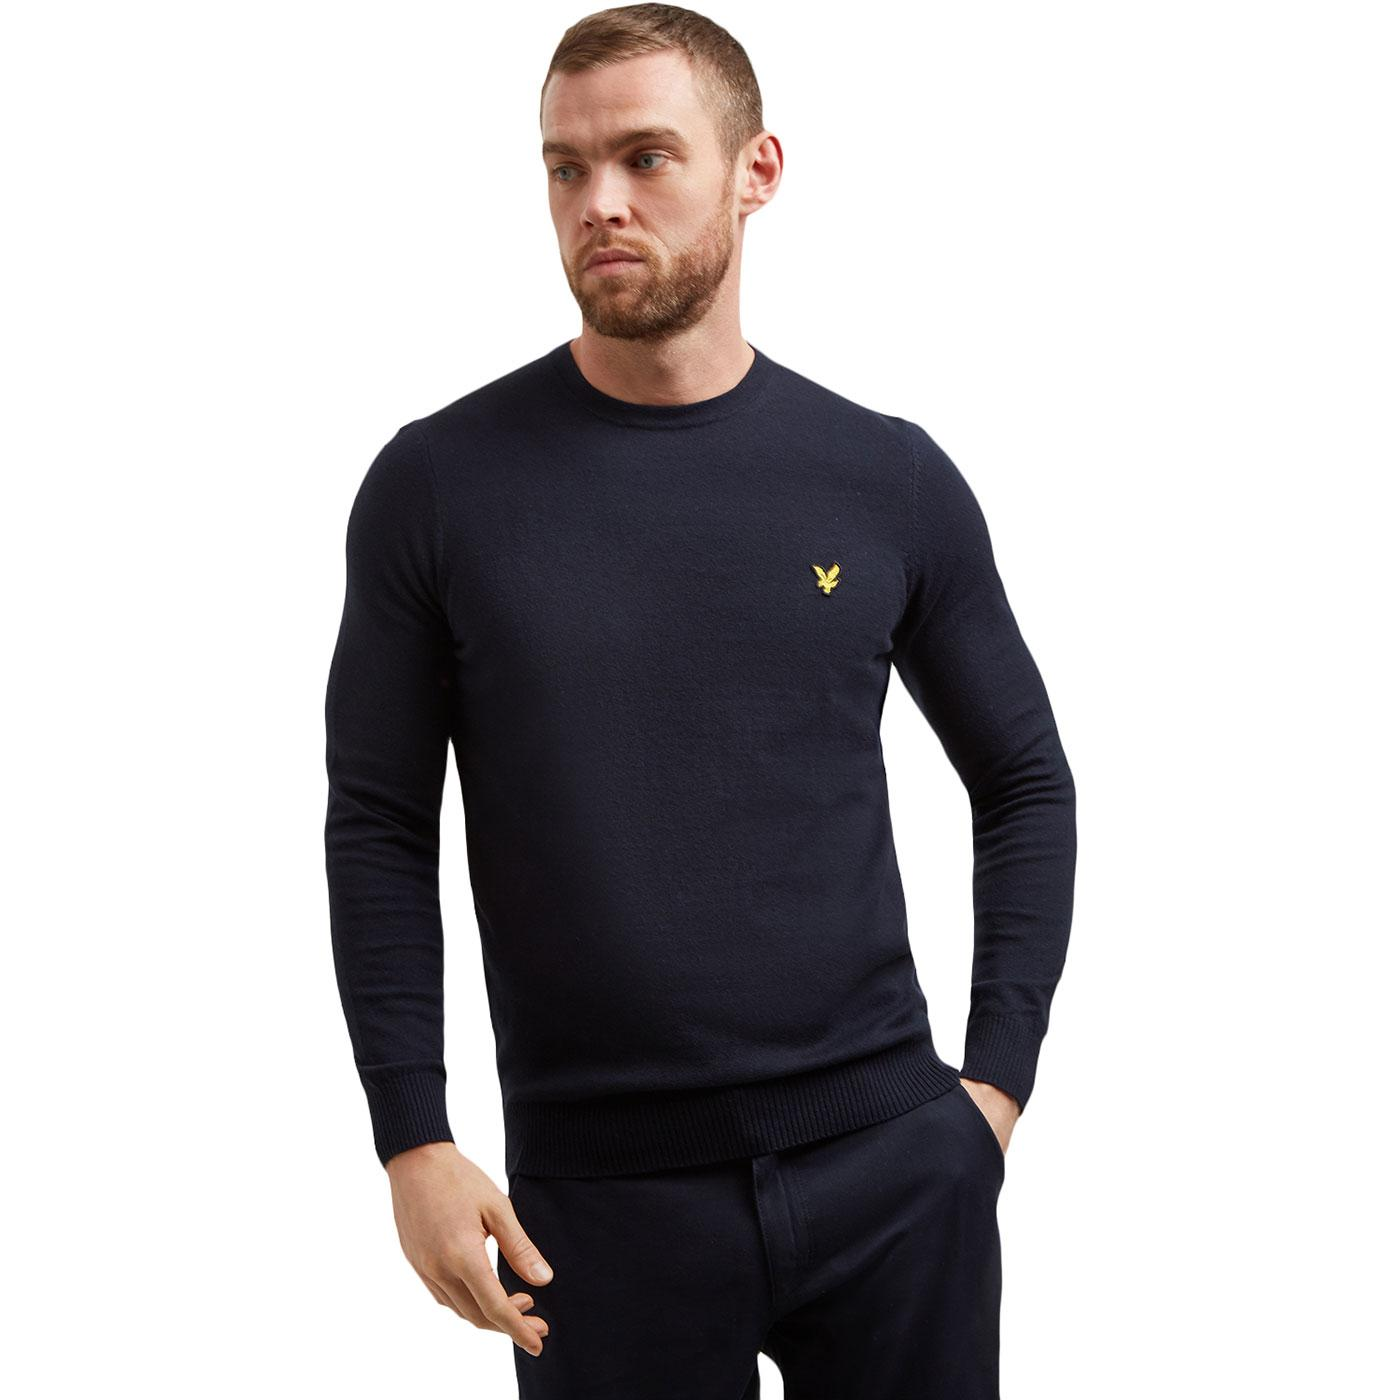 LYLE AND SCOTT Retro Merino Wool Knitted Jumper DN